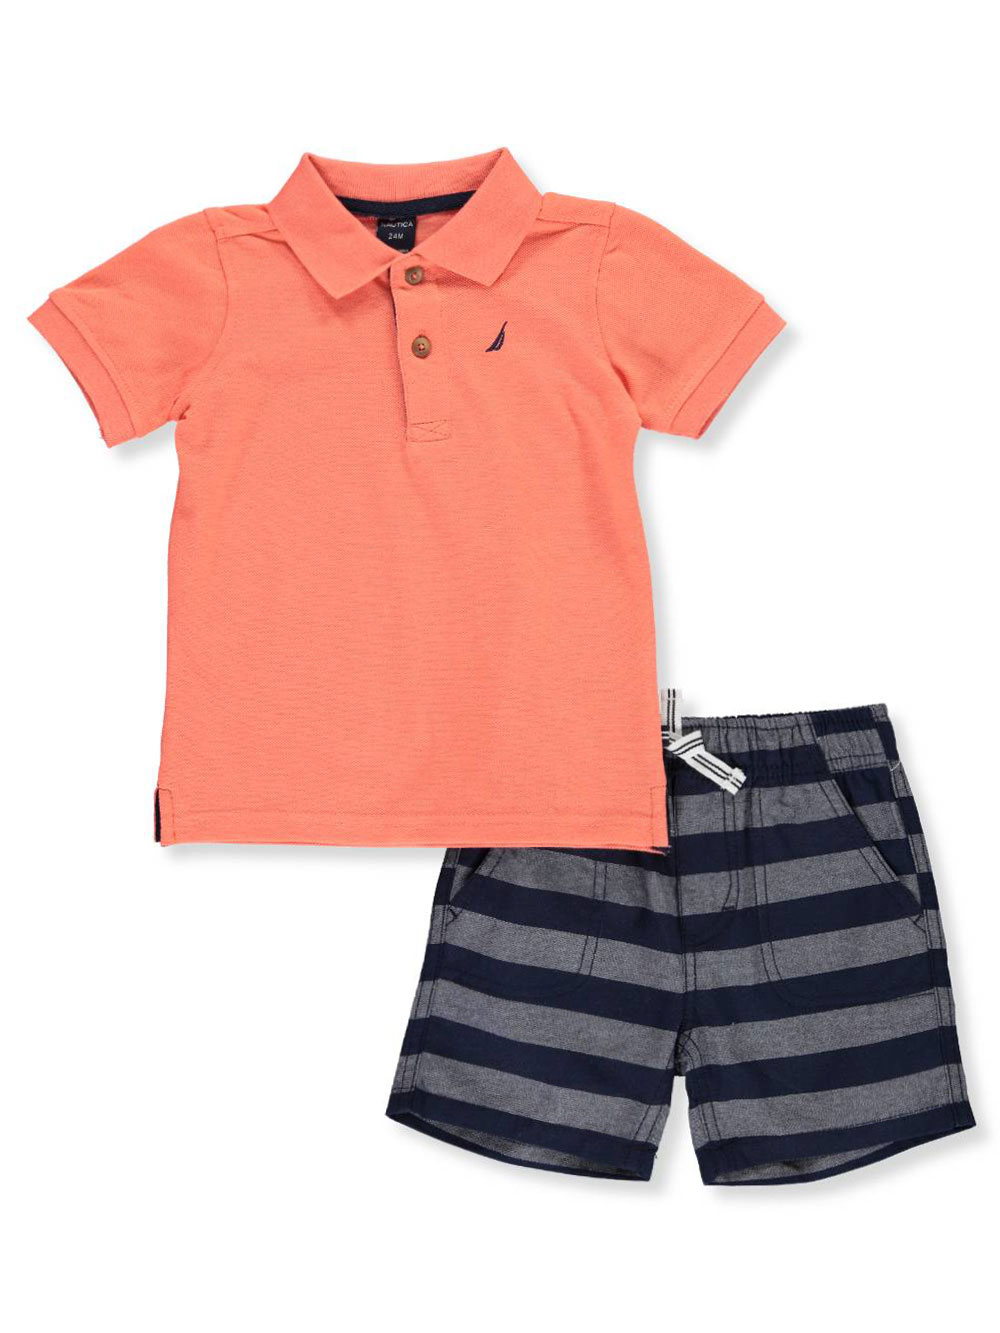 63f6a01e2ca5f Baby Boys  2-Piece Shorts Set Outfit by Nautica from Cookie s Kids